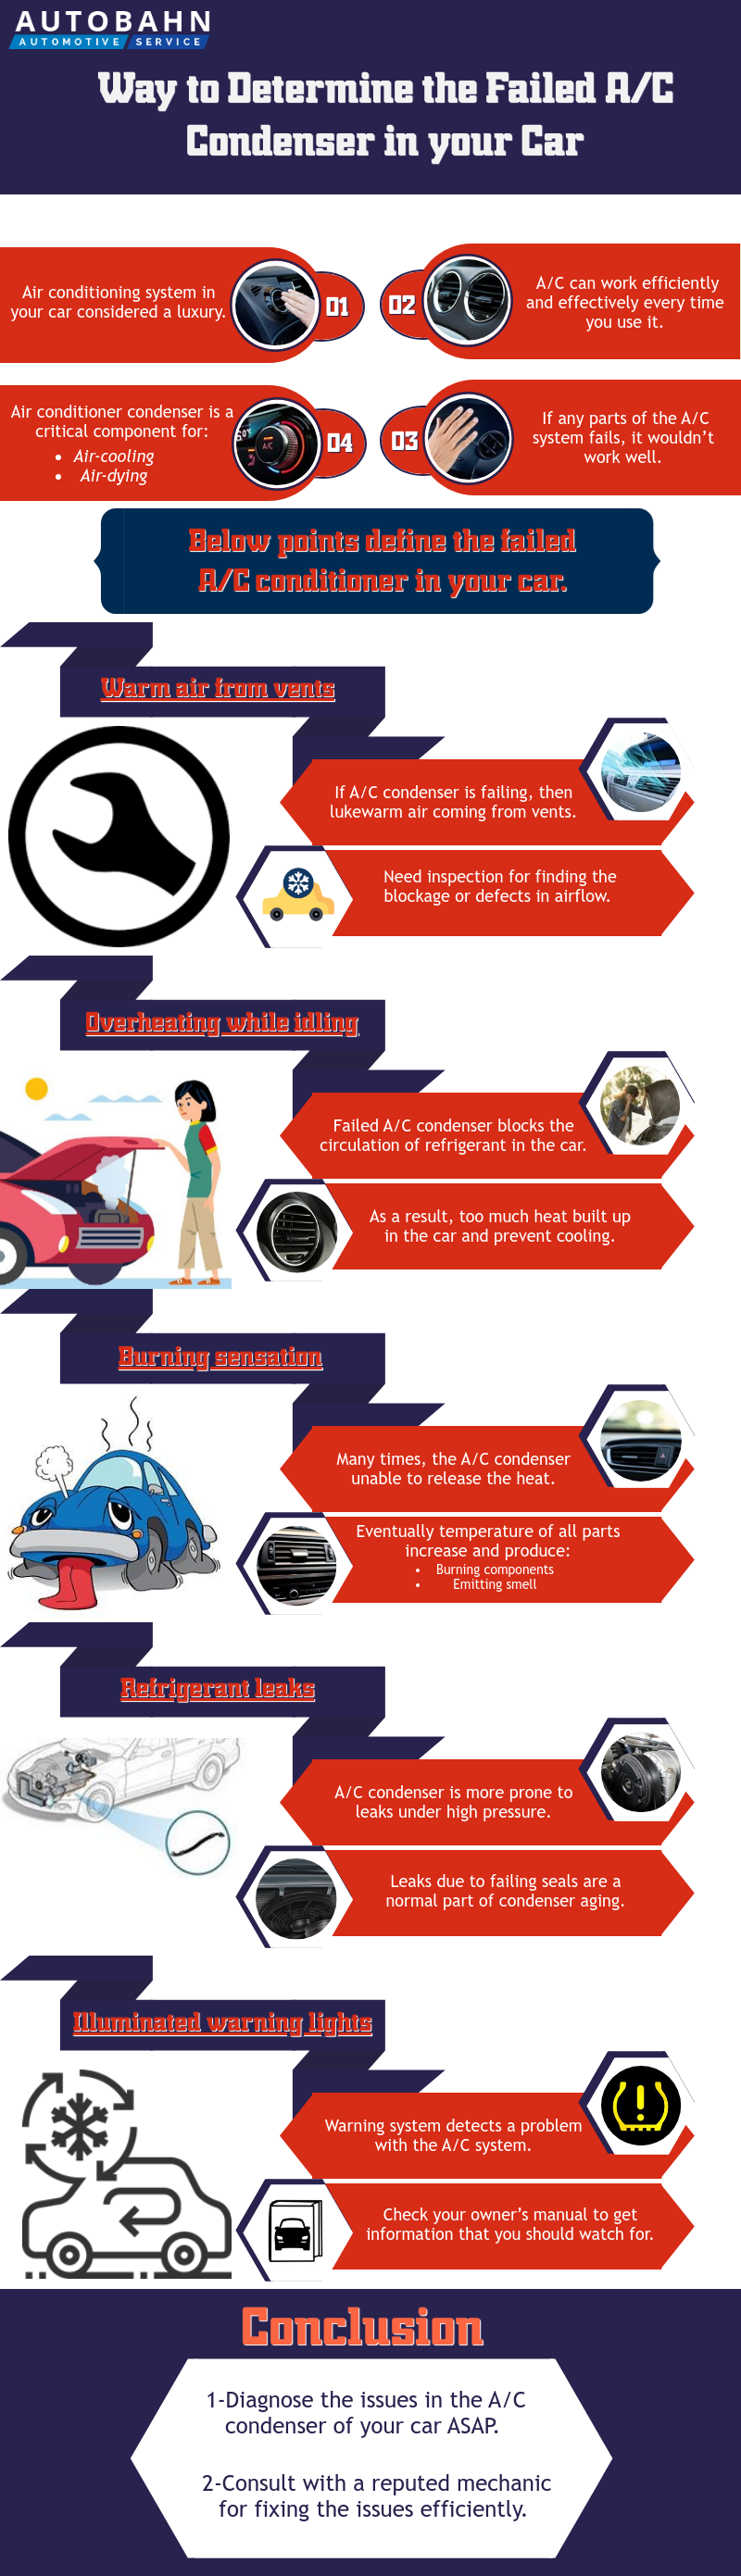 The cooling effect of your car air conditioning system